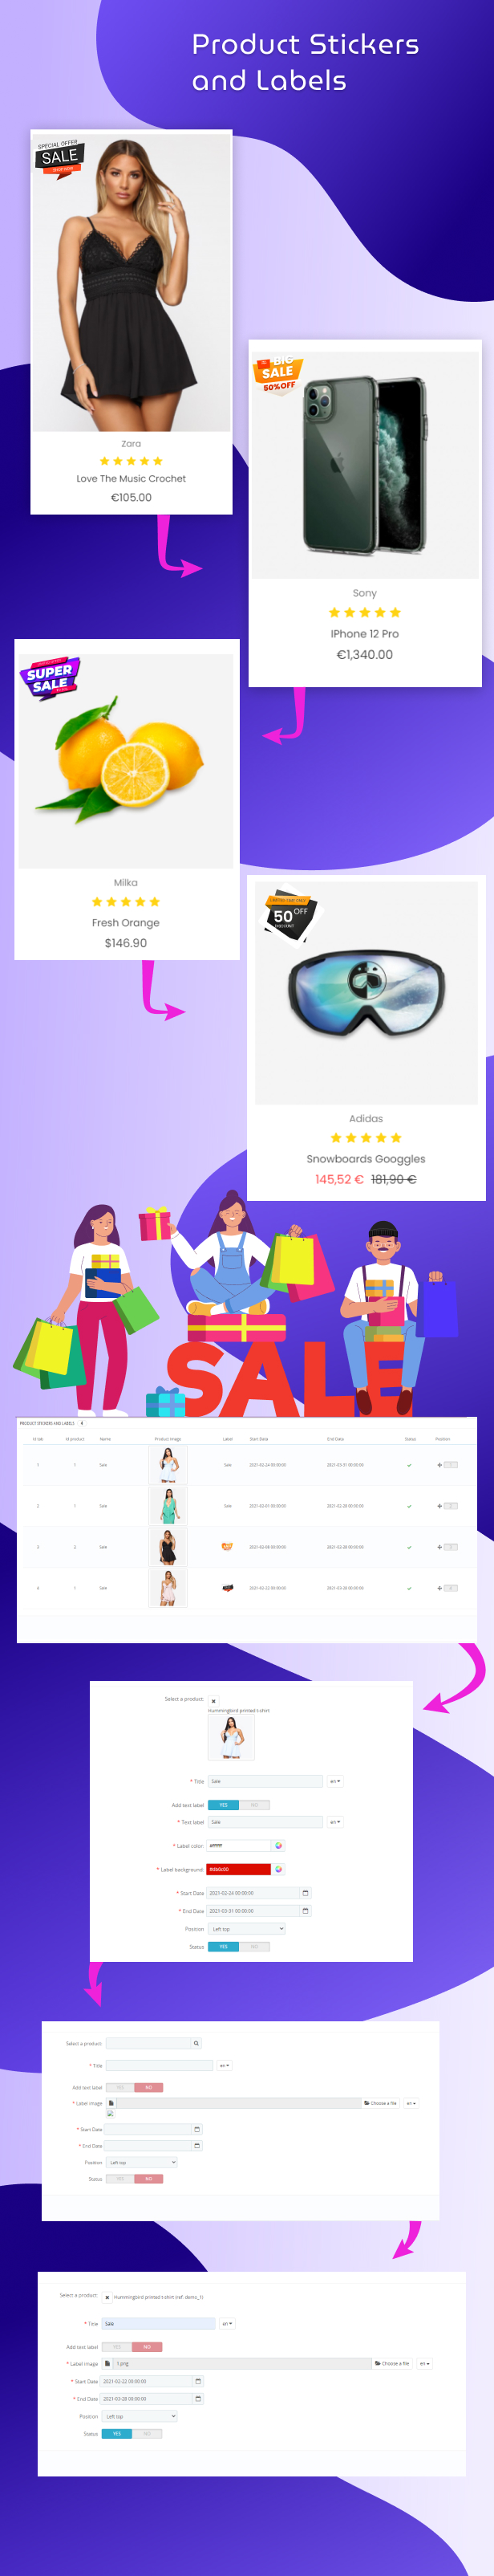 Prestashop Product Stickers and Labels